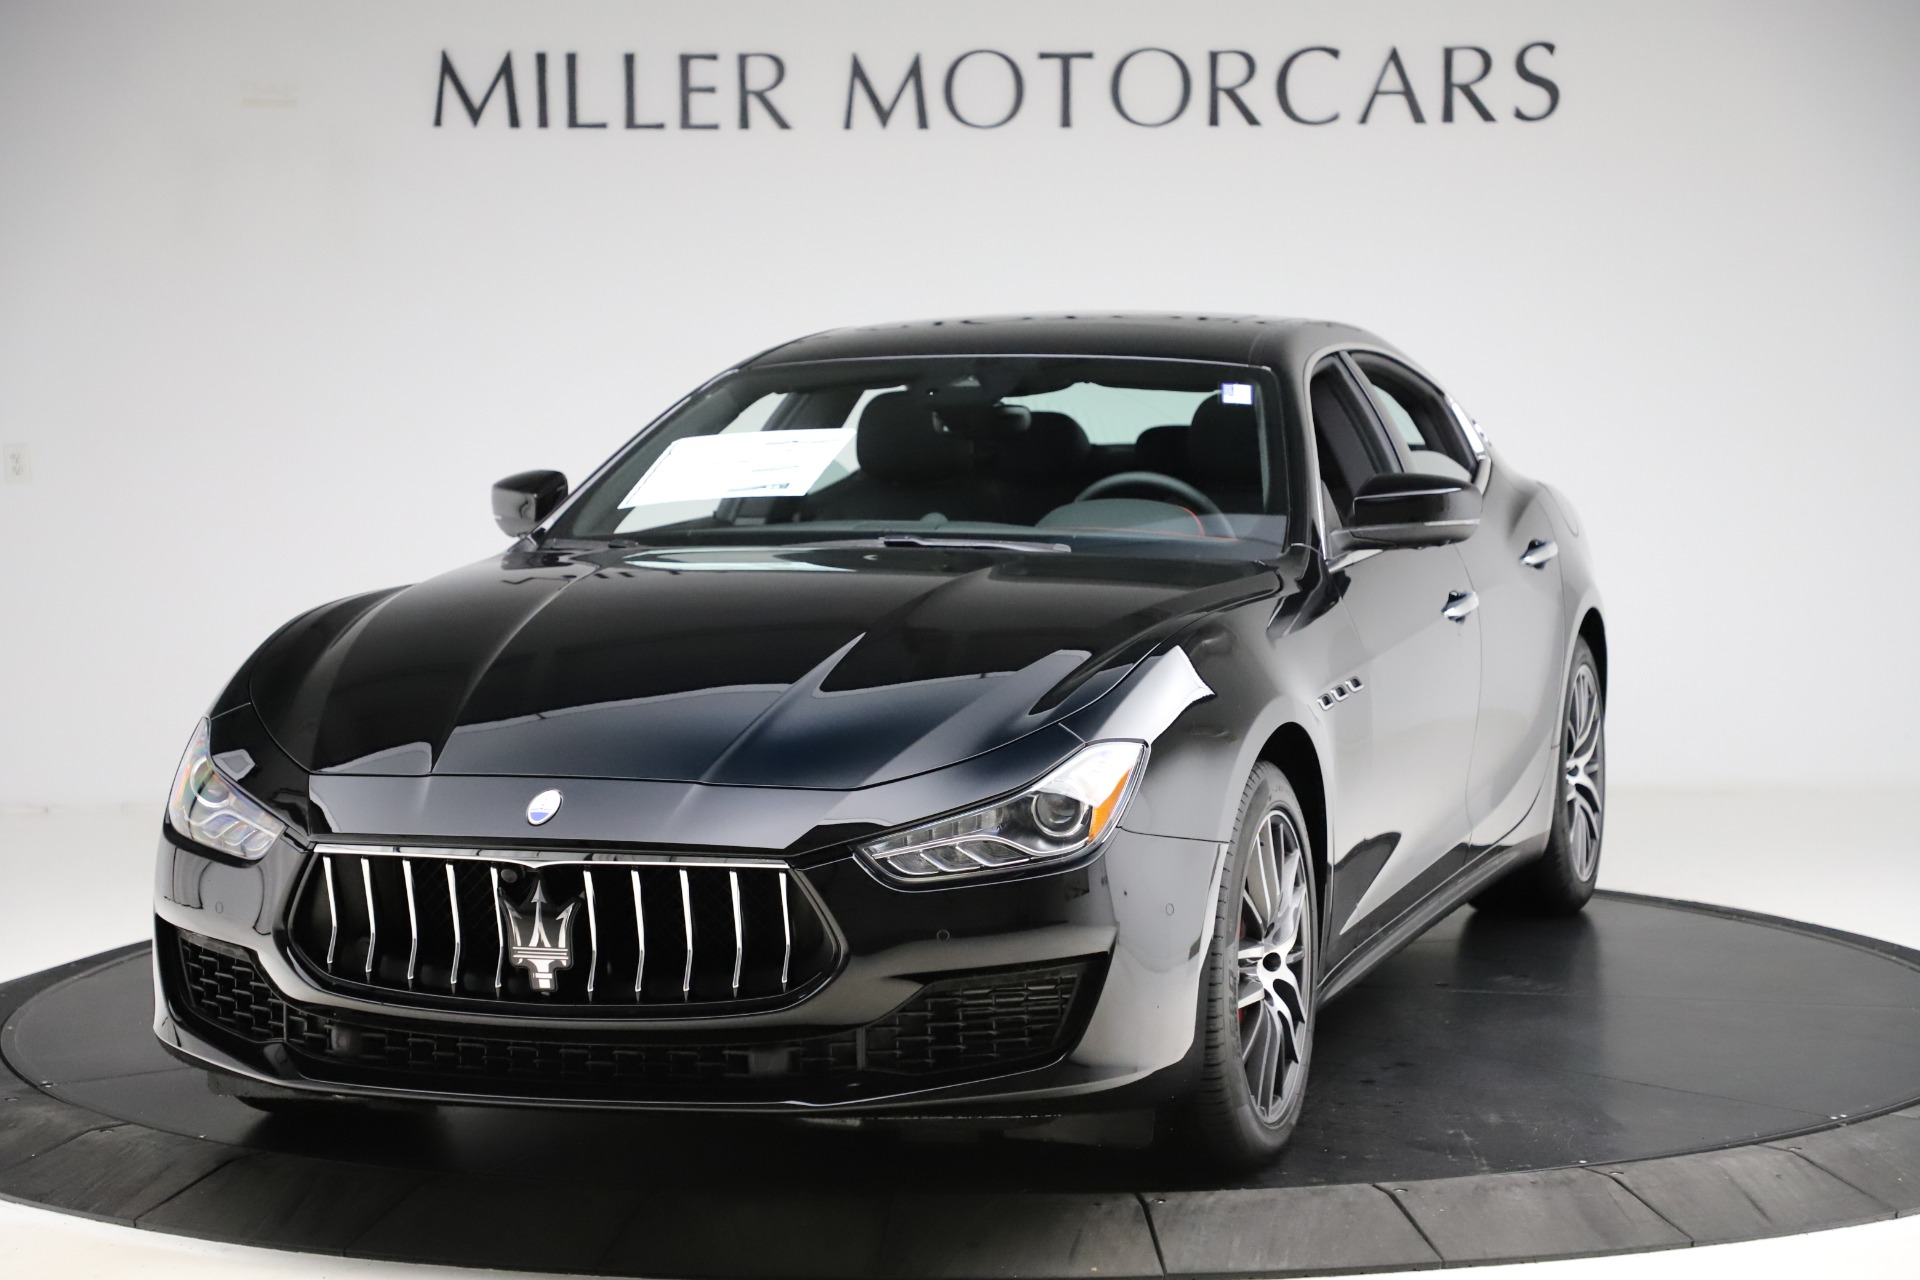 New 2020 Maserati Ghibli S Q4 for sale Sold at Pagani of Greenwich in Greenwich CT 06830 1